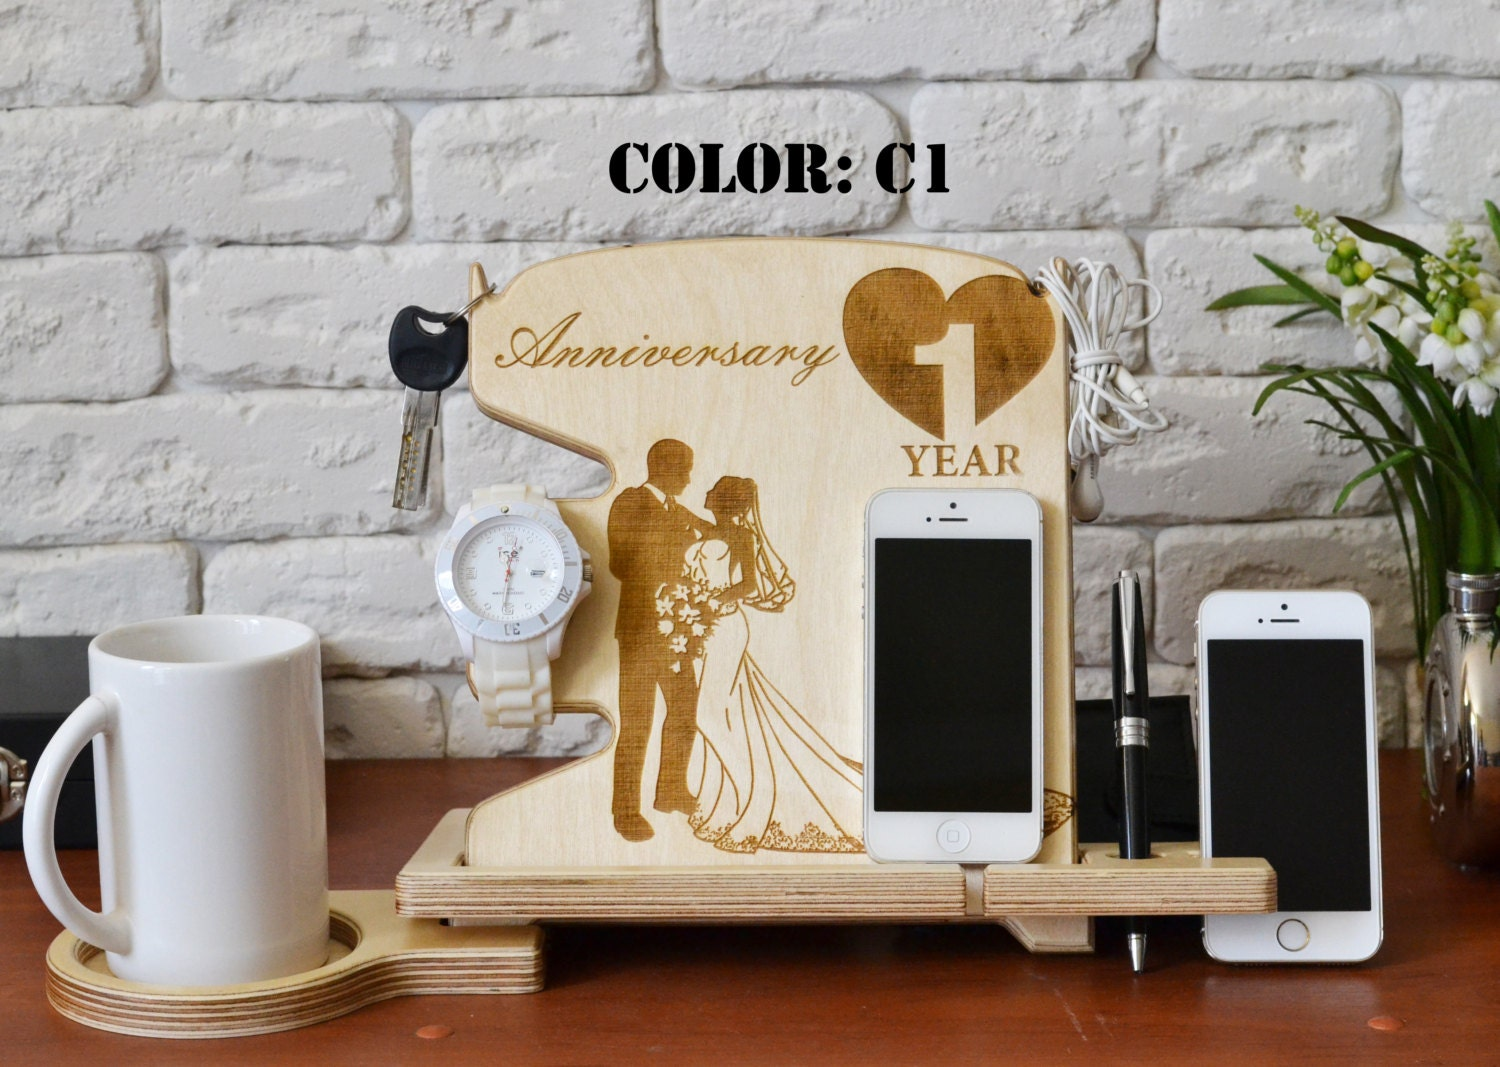 Sixth Wedding Anniversary Gift: 6th Anniversary Gift Ideas First Wedding Anniversary Gift